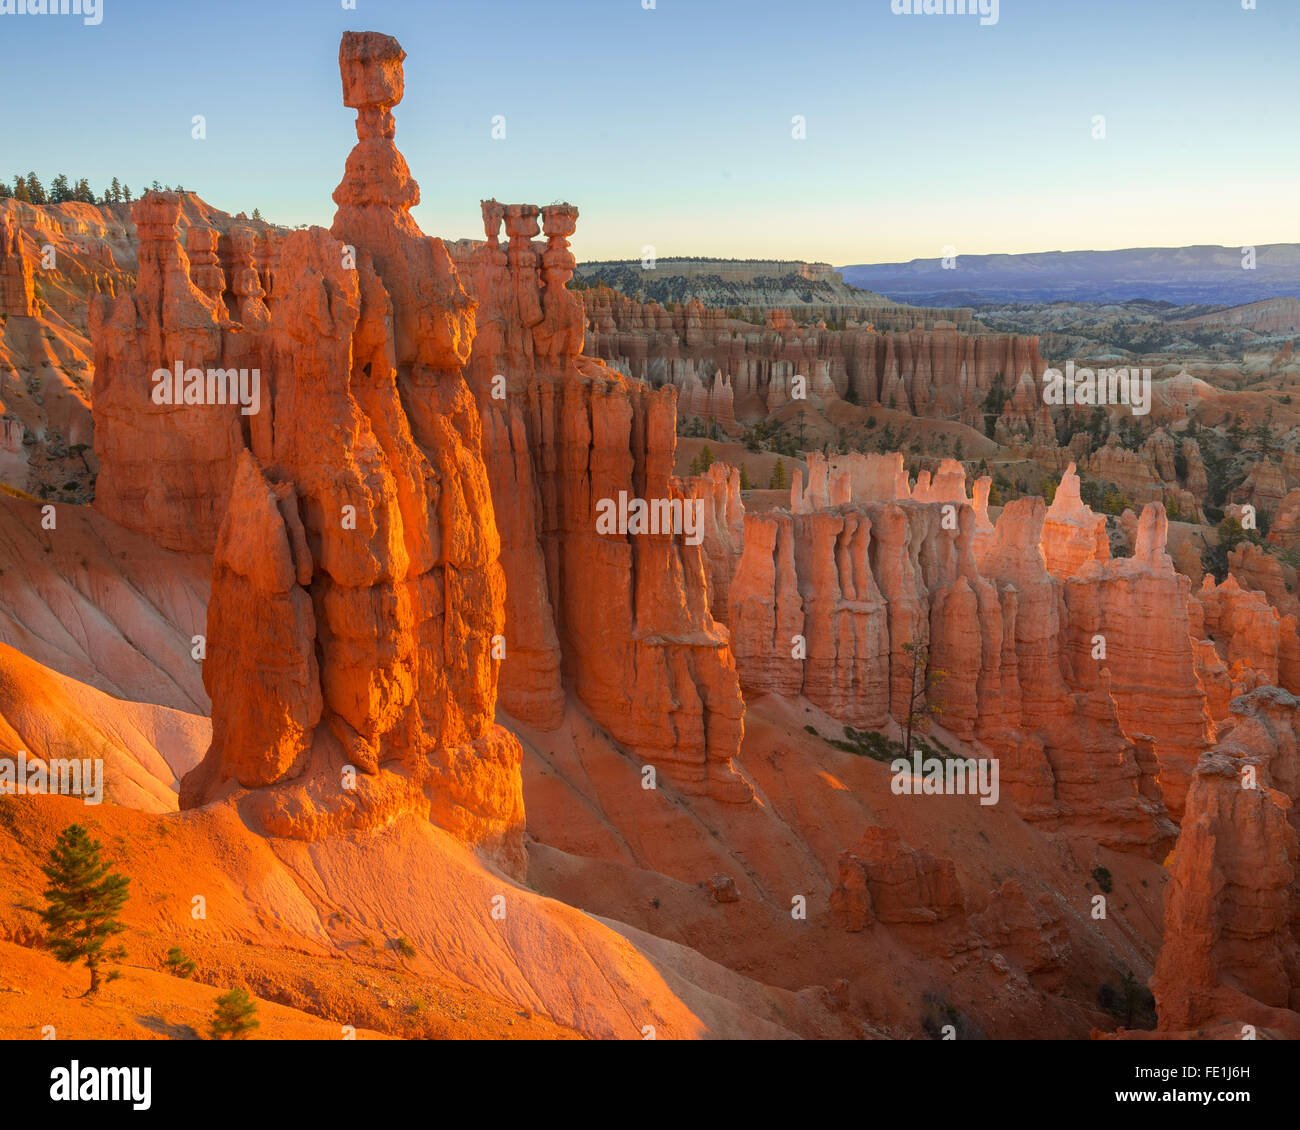 Bryce Canyon National Park, UT: Morning sun in the Bryce Ampitheater backlighting Thor's Hammer hoodoo and sandstone - Stock Image